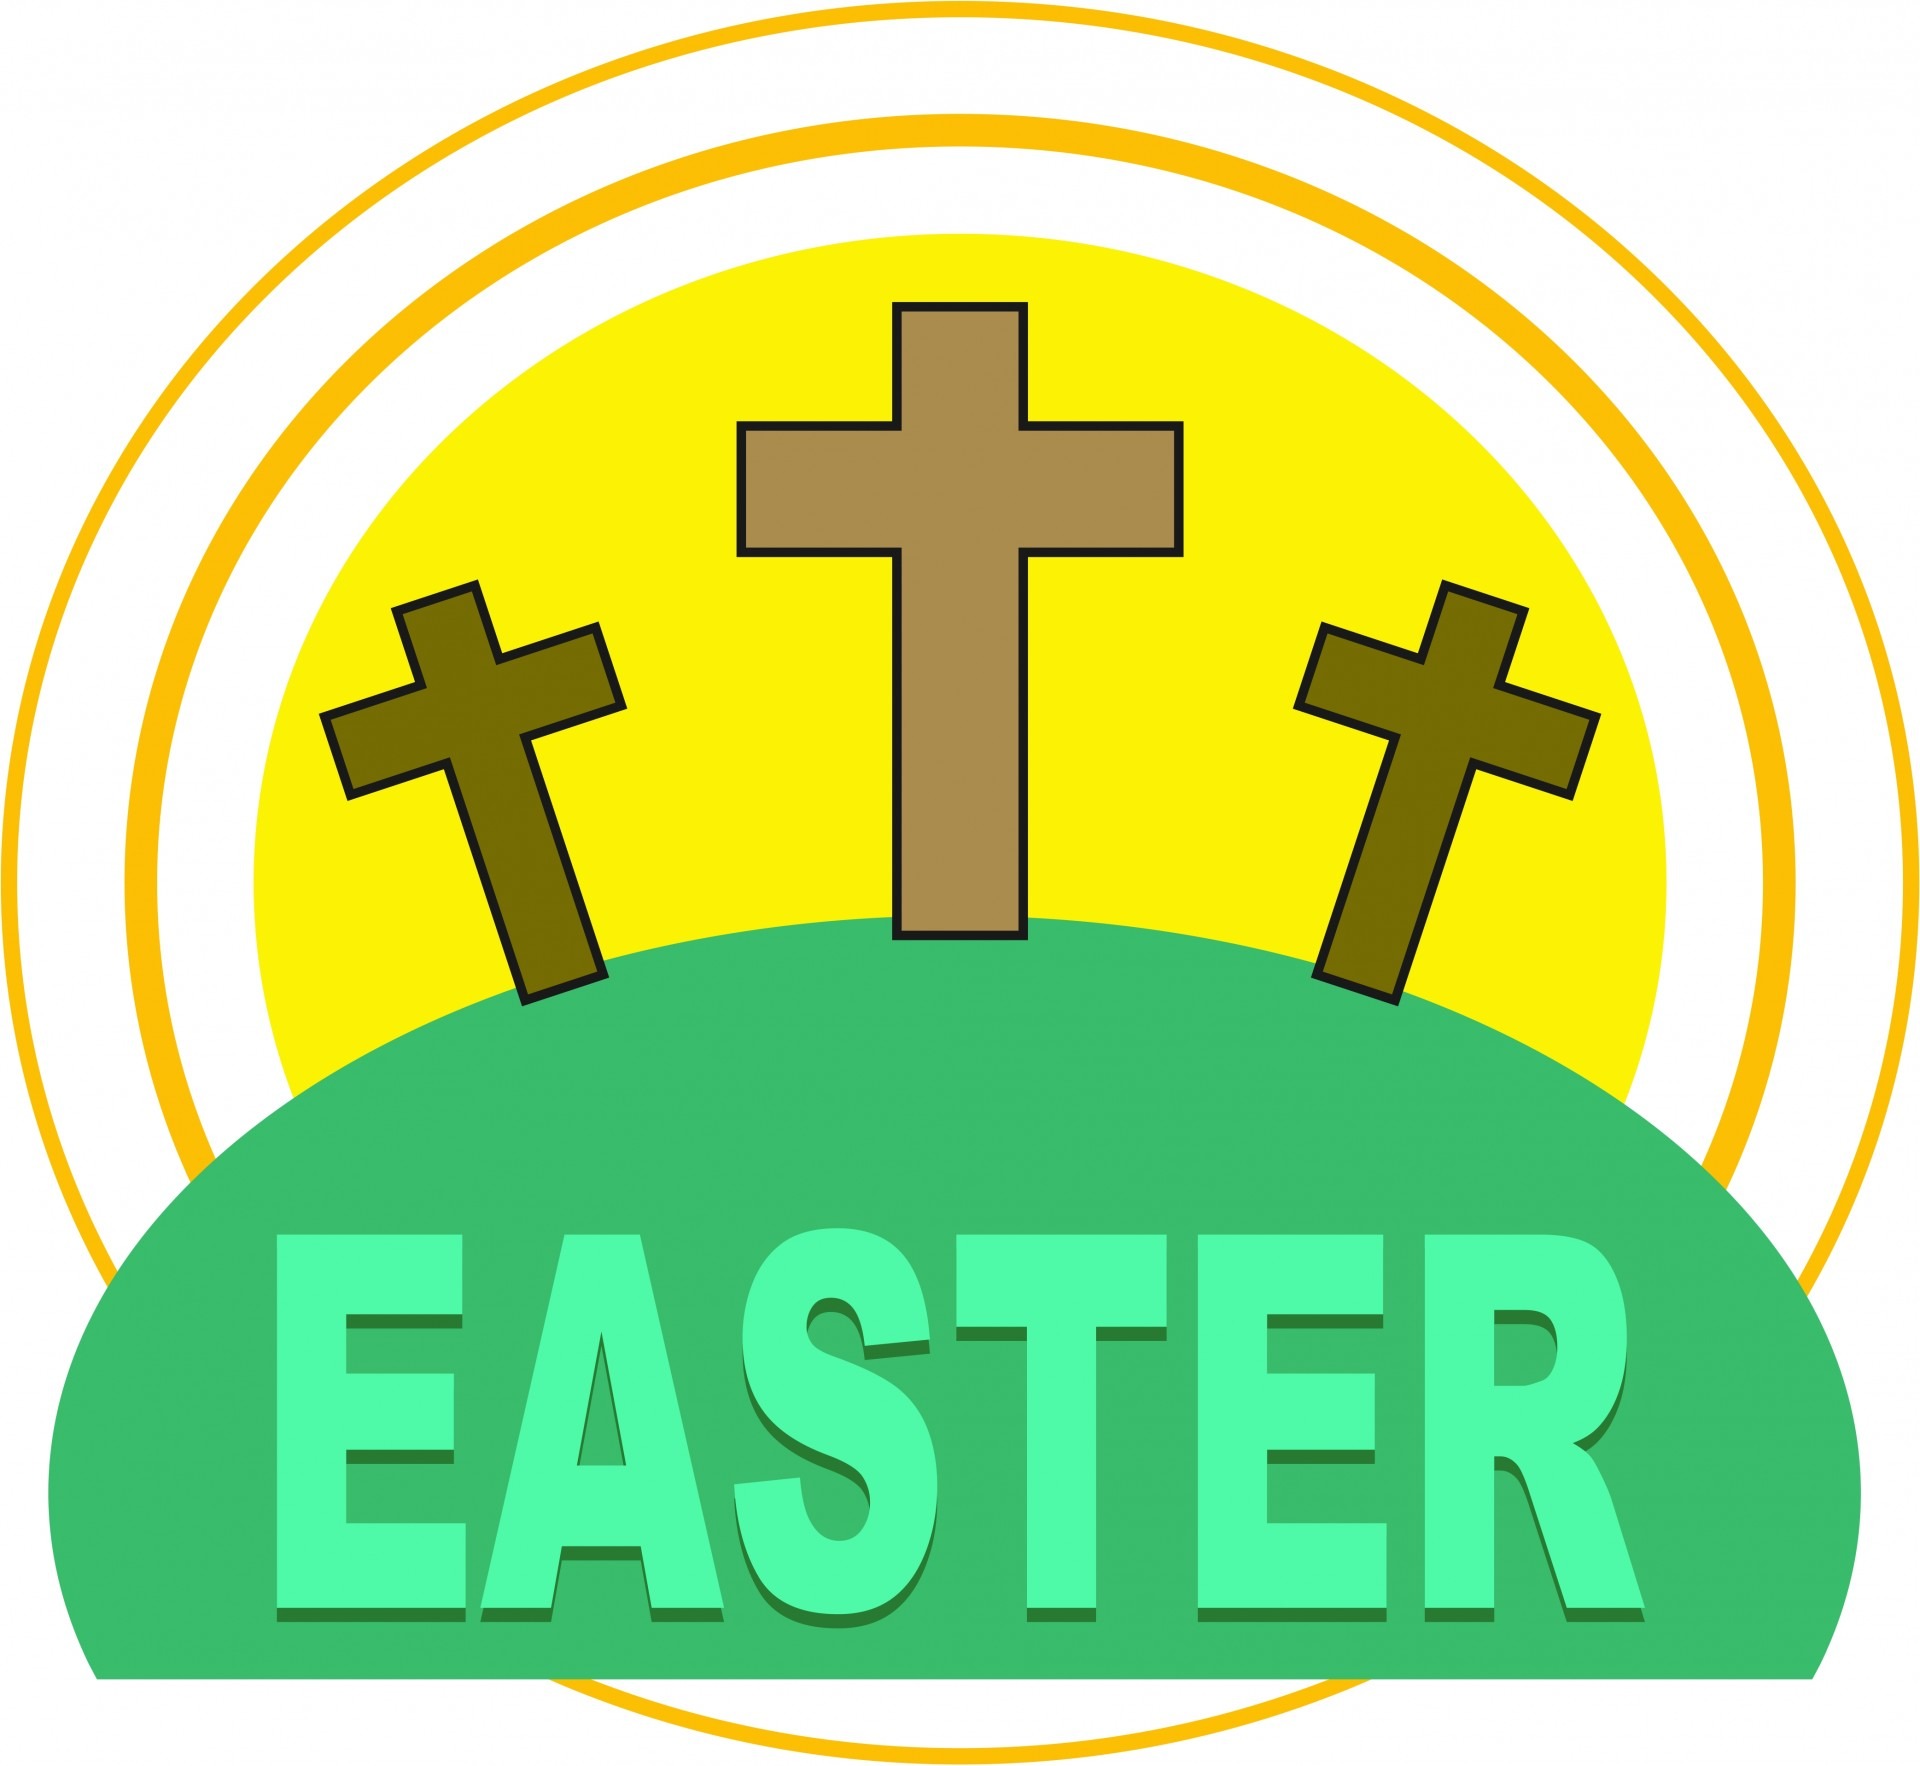 free christian easter clipart at getdrawings com free for personal rh getdrawings com christian easter clipart black and white christian clipart easter sunday